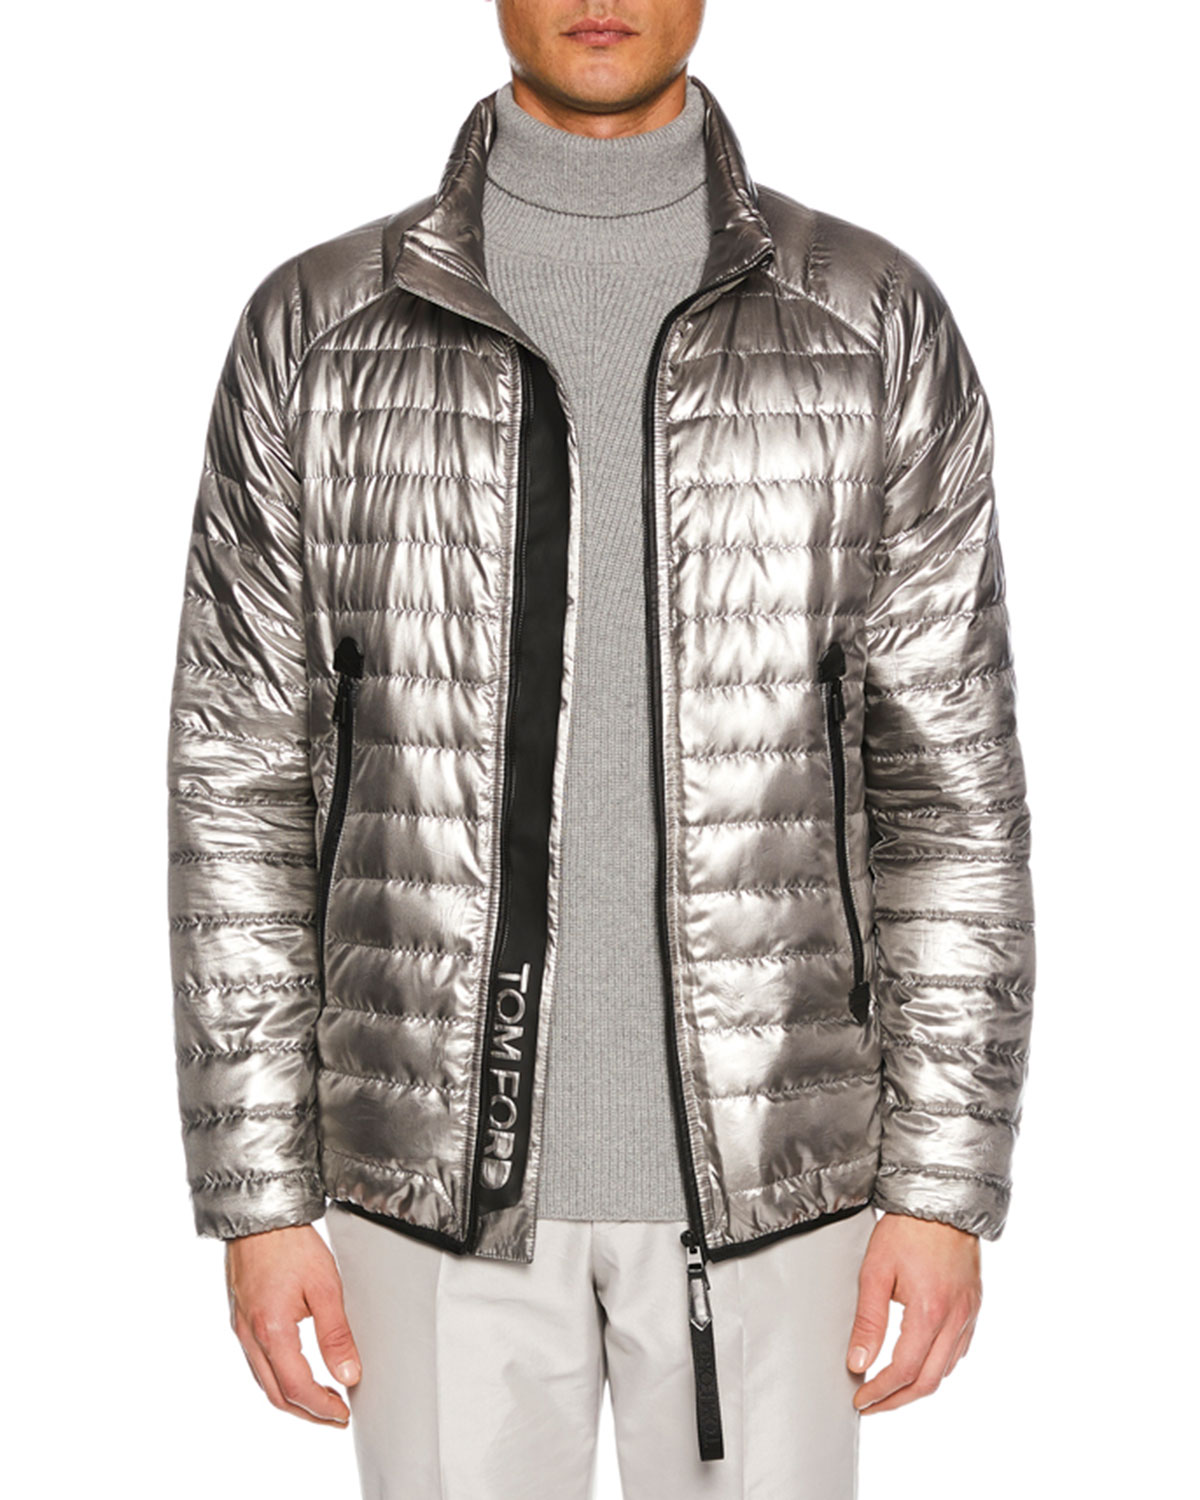 Men's Metallic Puffer Jacket